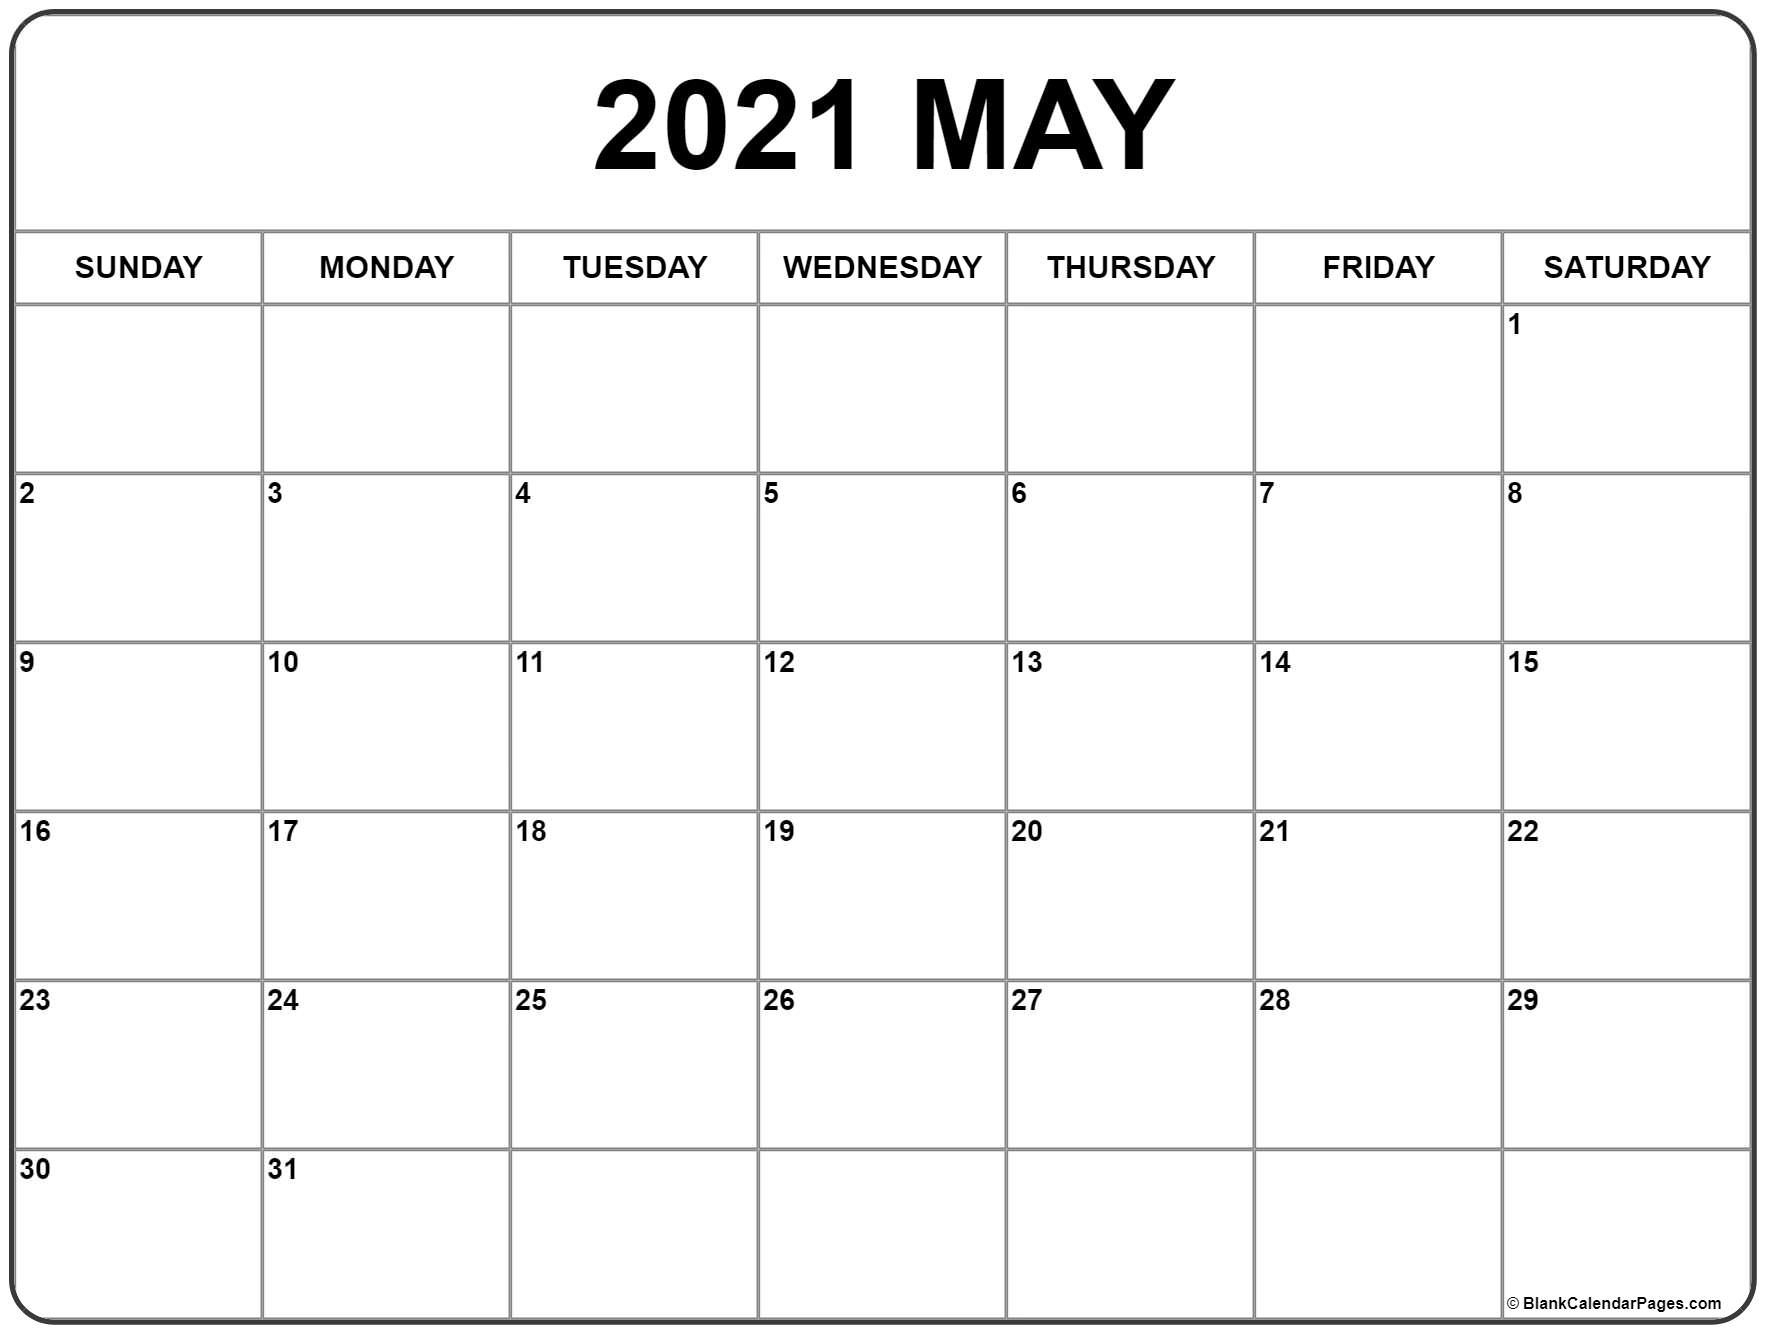 Calendar With Days Numbered 1 365 For 2021 | Ten Free with regard to Free Printable Calendar With Lines On Days 2021